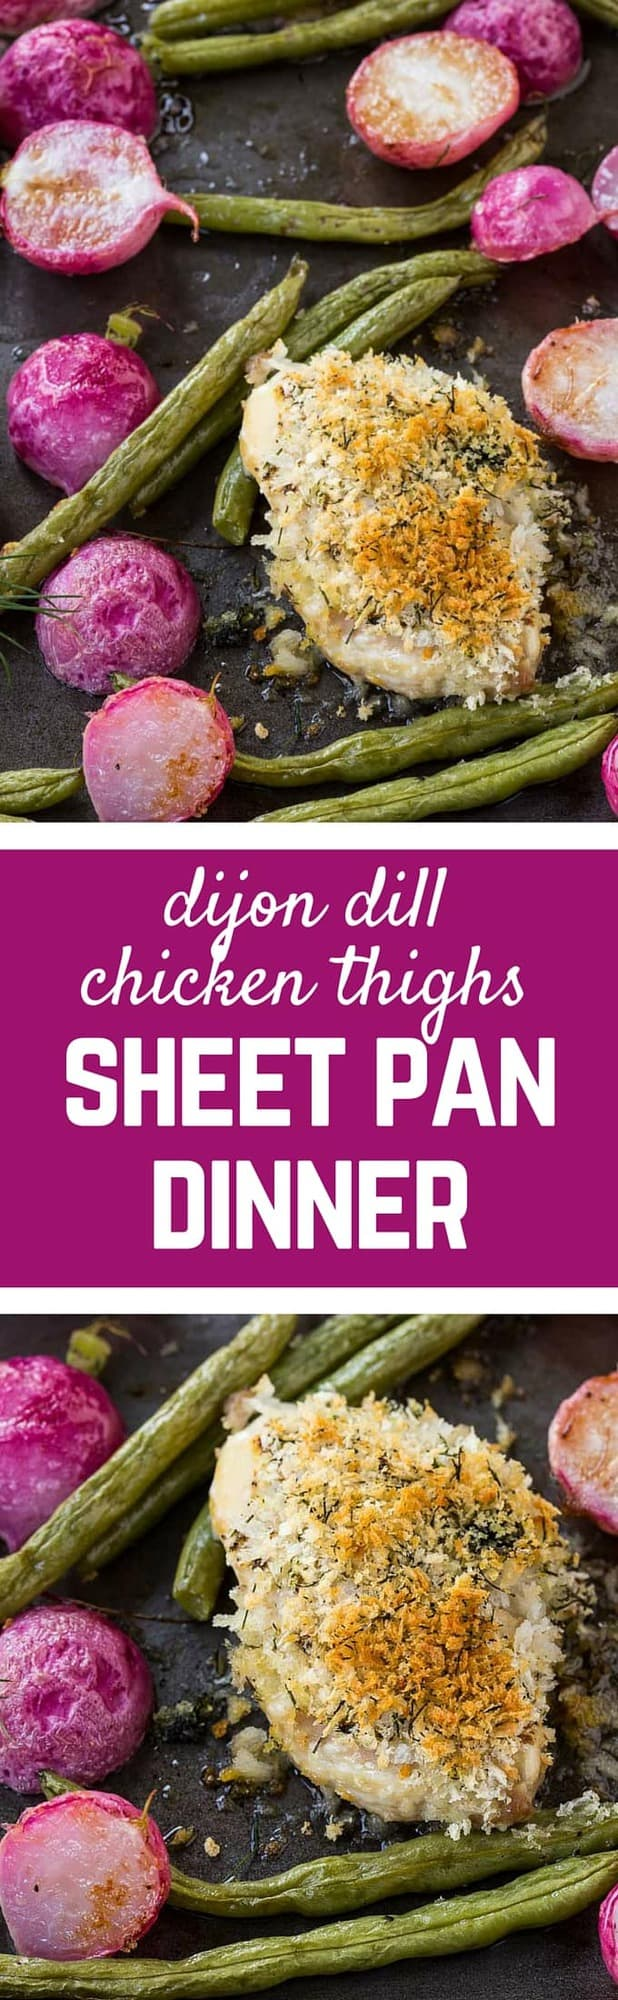 Crispy chicken thighs baked with dijon and dill are great on their own, but with the addition of roasted green beans and radishes, you have a perfect springtime sheet pan dinner. Get the easy recipe on RachelCooks.com!